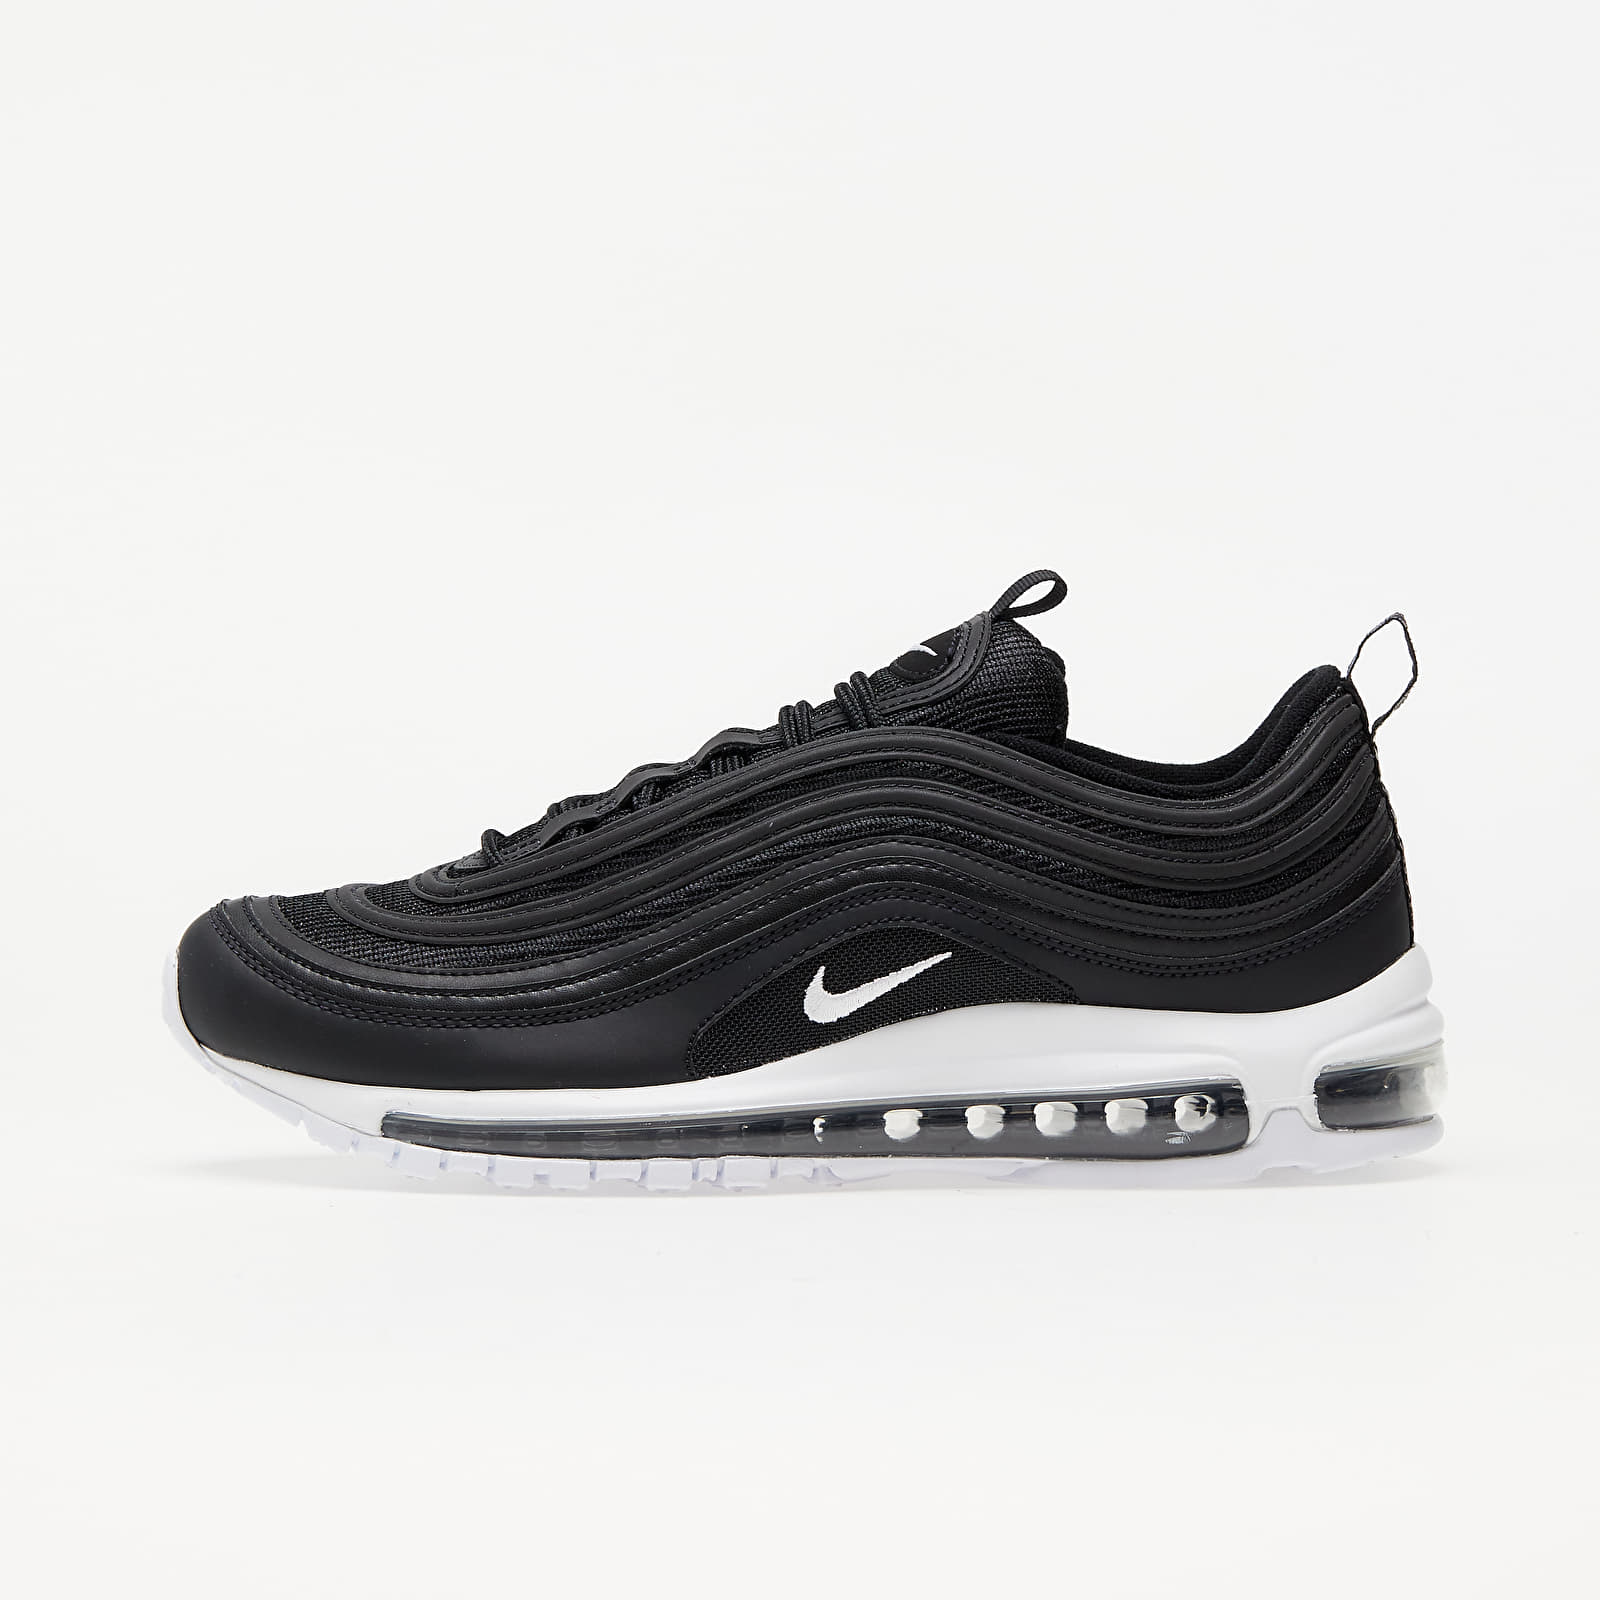 Nike Air Max 97 Black/ White EUR 42